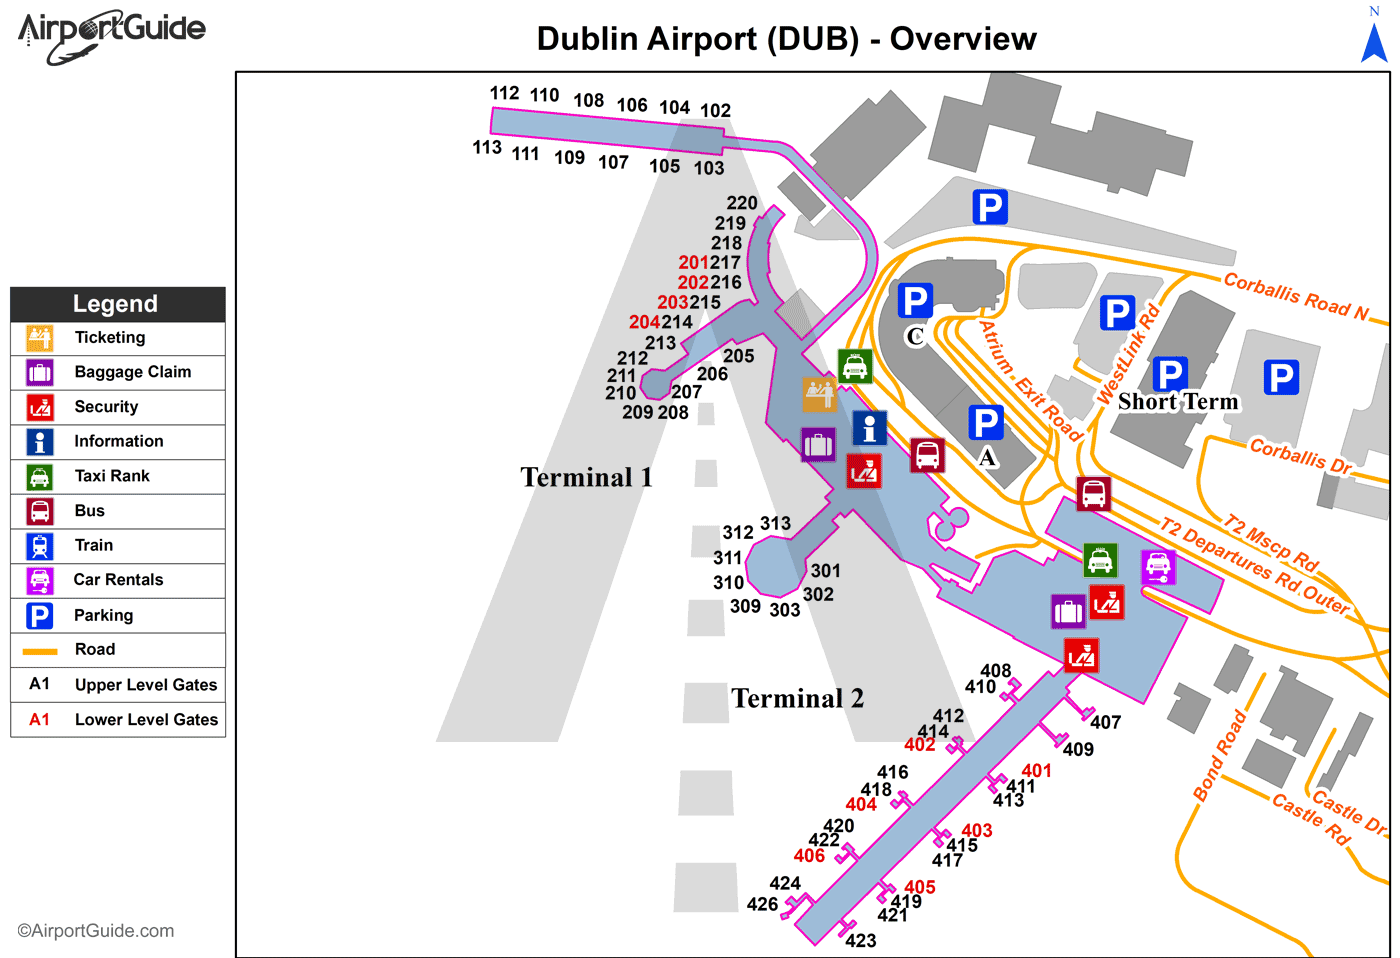 flights to dub cheap flights to dublin airport.